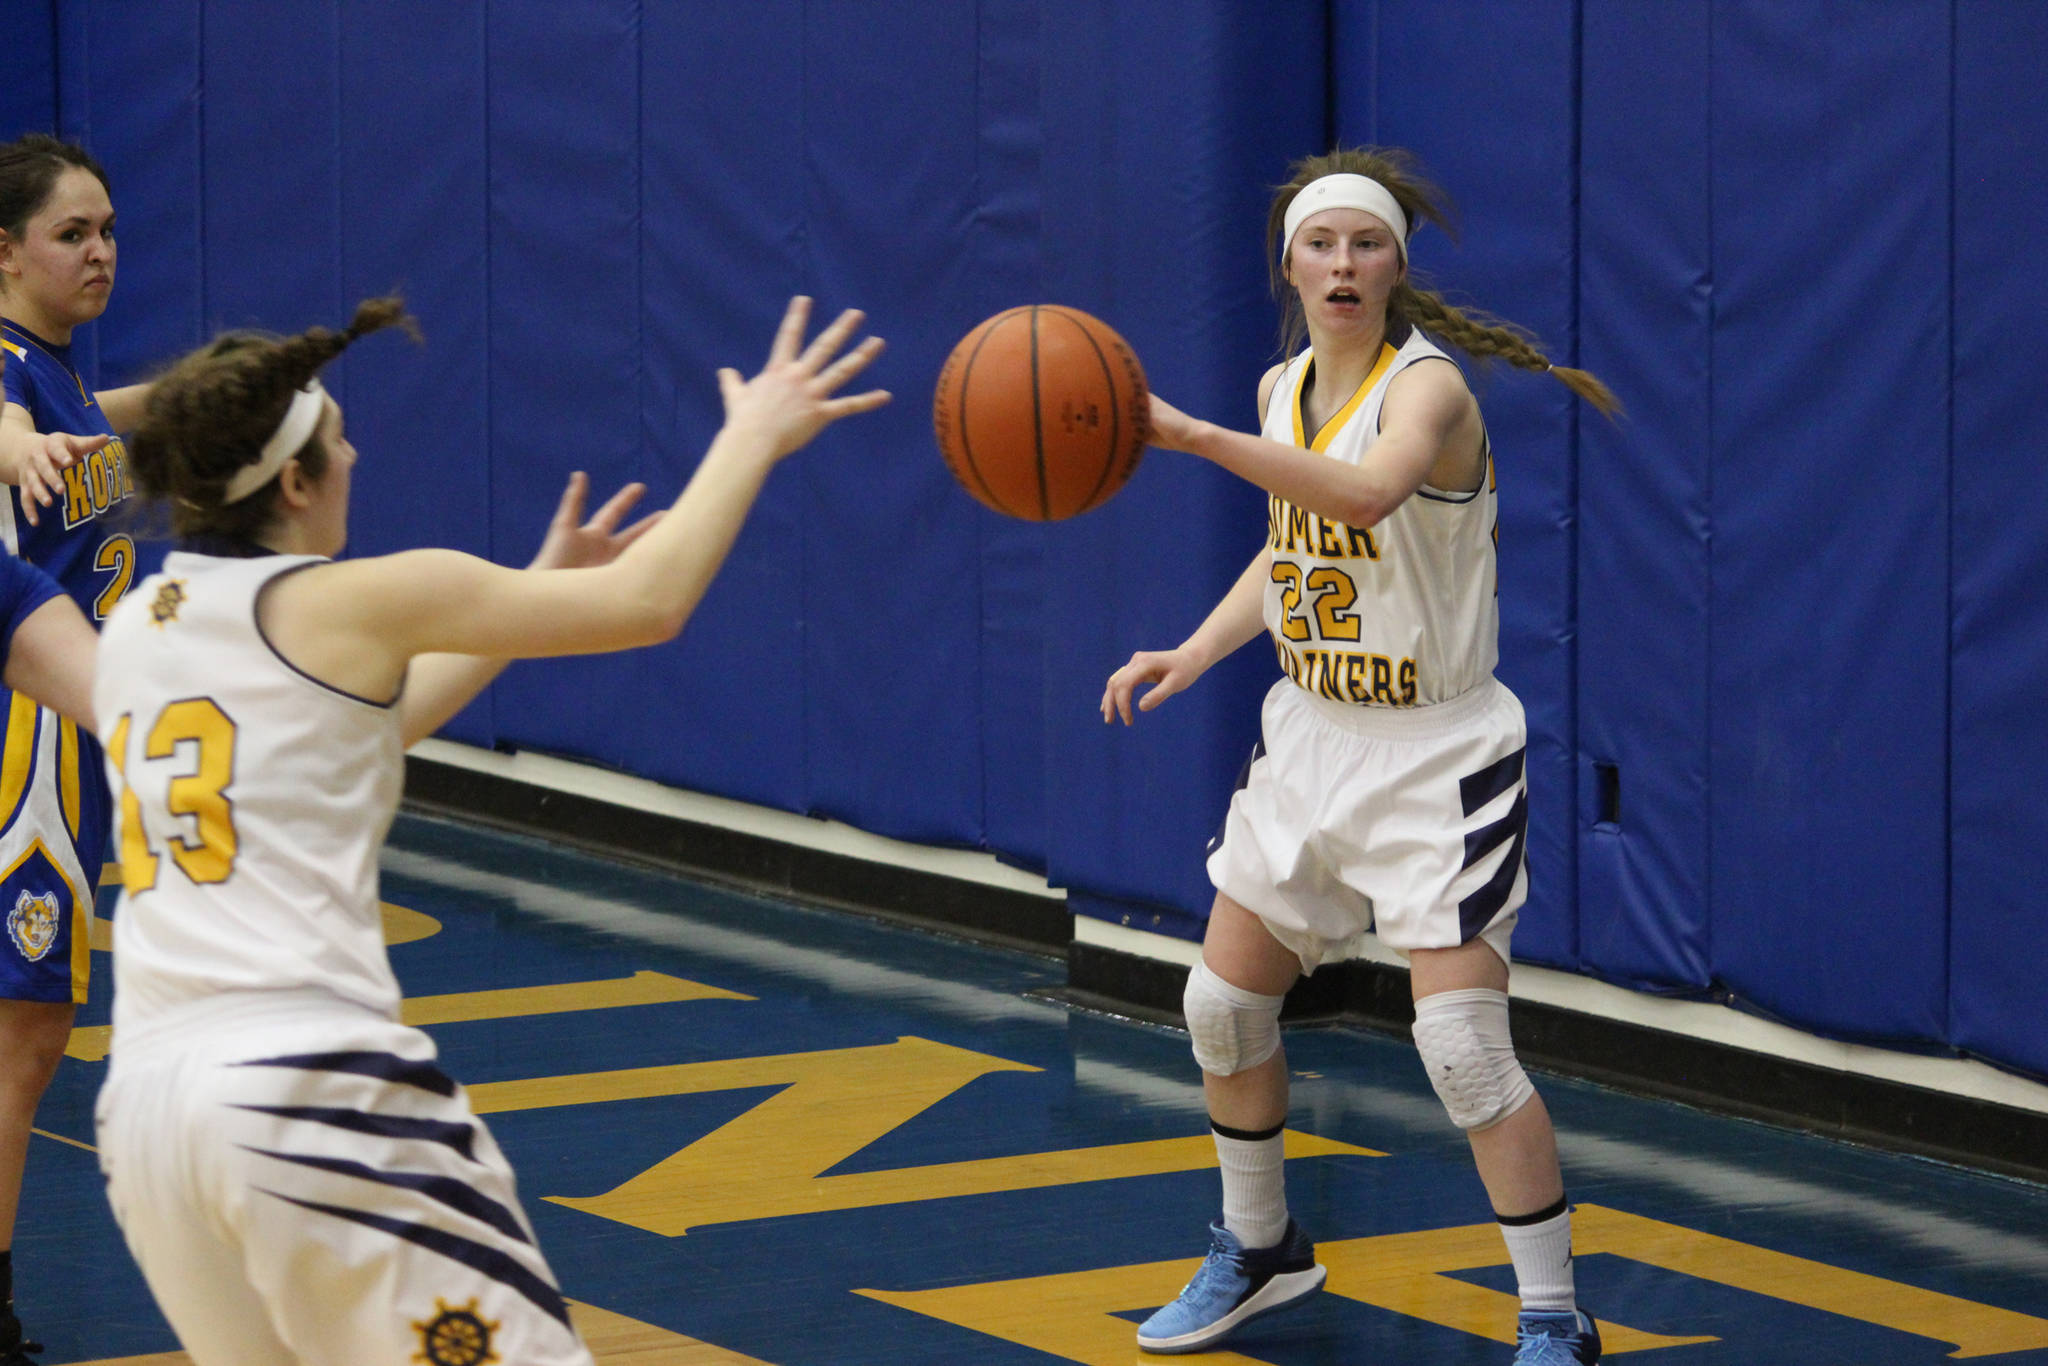 Homer's Alissa Cole passes the ball to Rylyn Todd durng the girls team's first game in the Homer Winter Carnival Tournament on Thursday, Feb. 8, 2018 at the Alice Witte Gymnasium in Homer, Alaska. (Photo by Megan Pacer/Homer News)